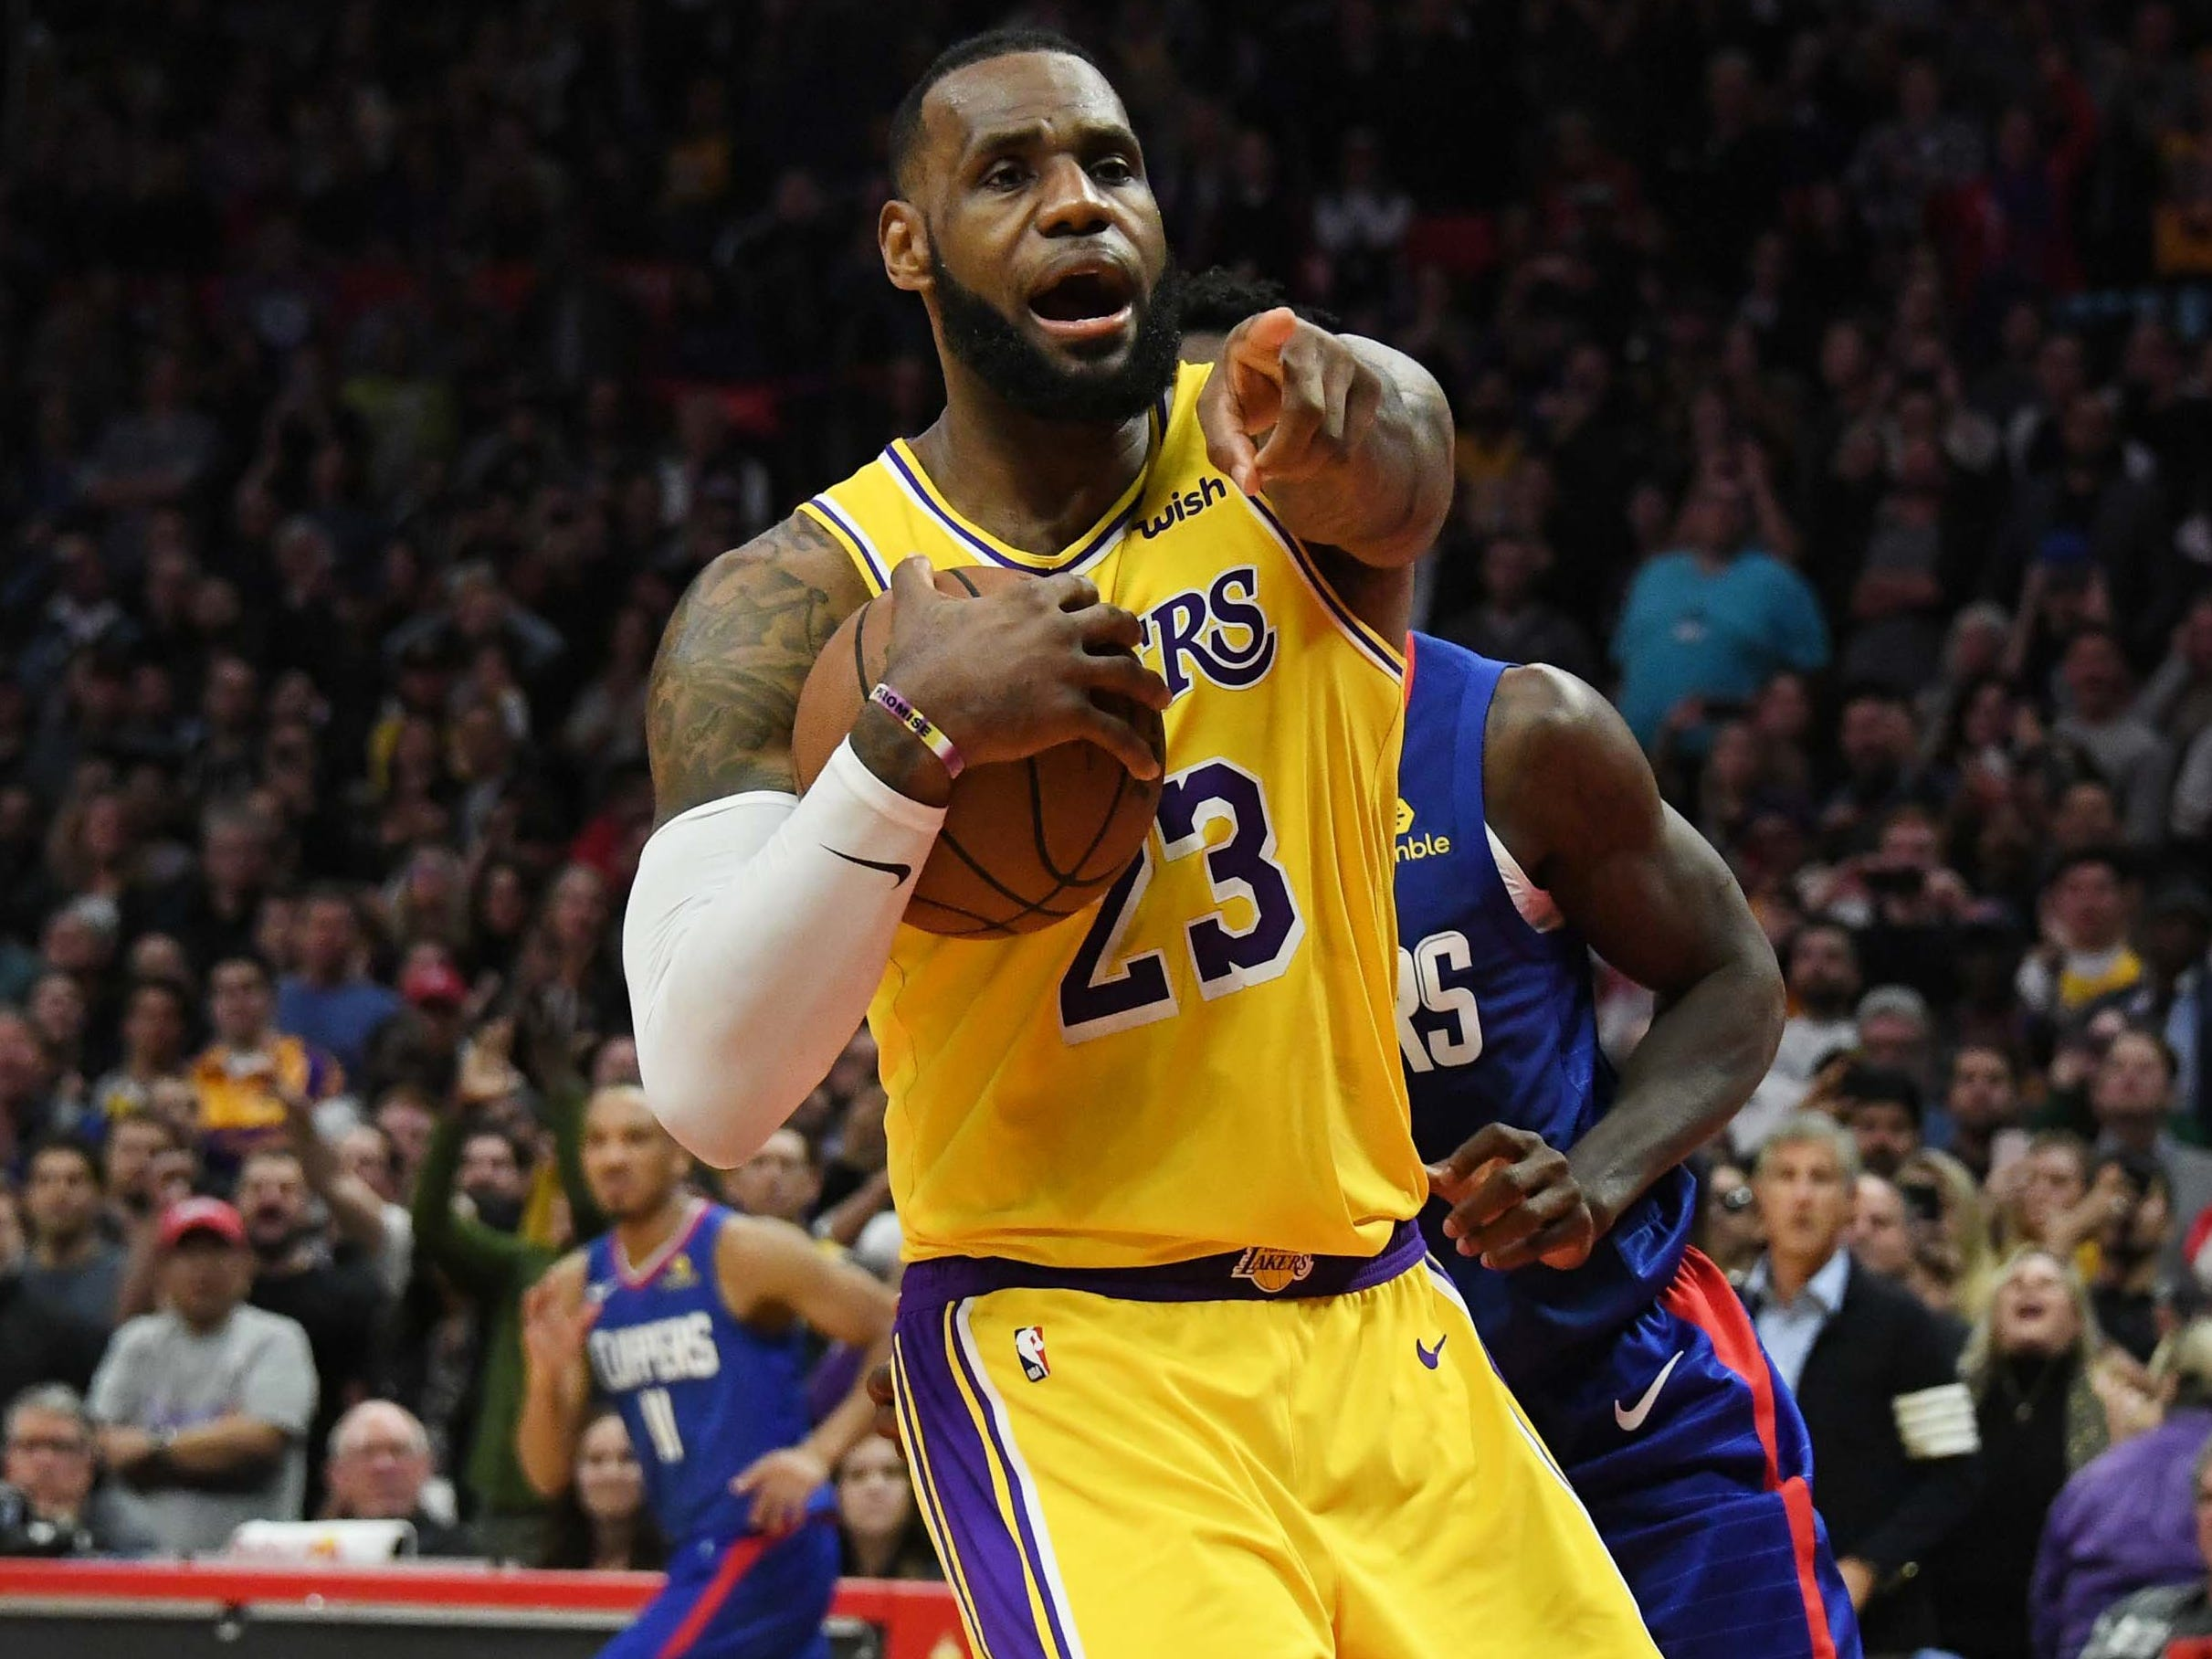 Jan. 31, 2019: After the longest injury absence of his career, LeBron James returned to the court to lead the Lakers to a 123-120 overtime win over the Clippers.